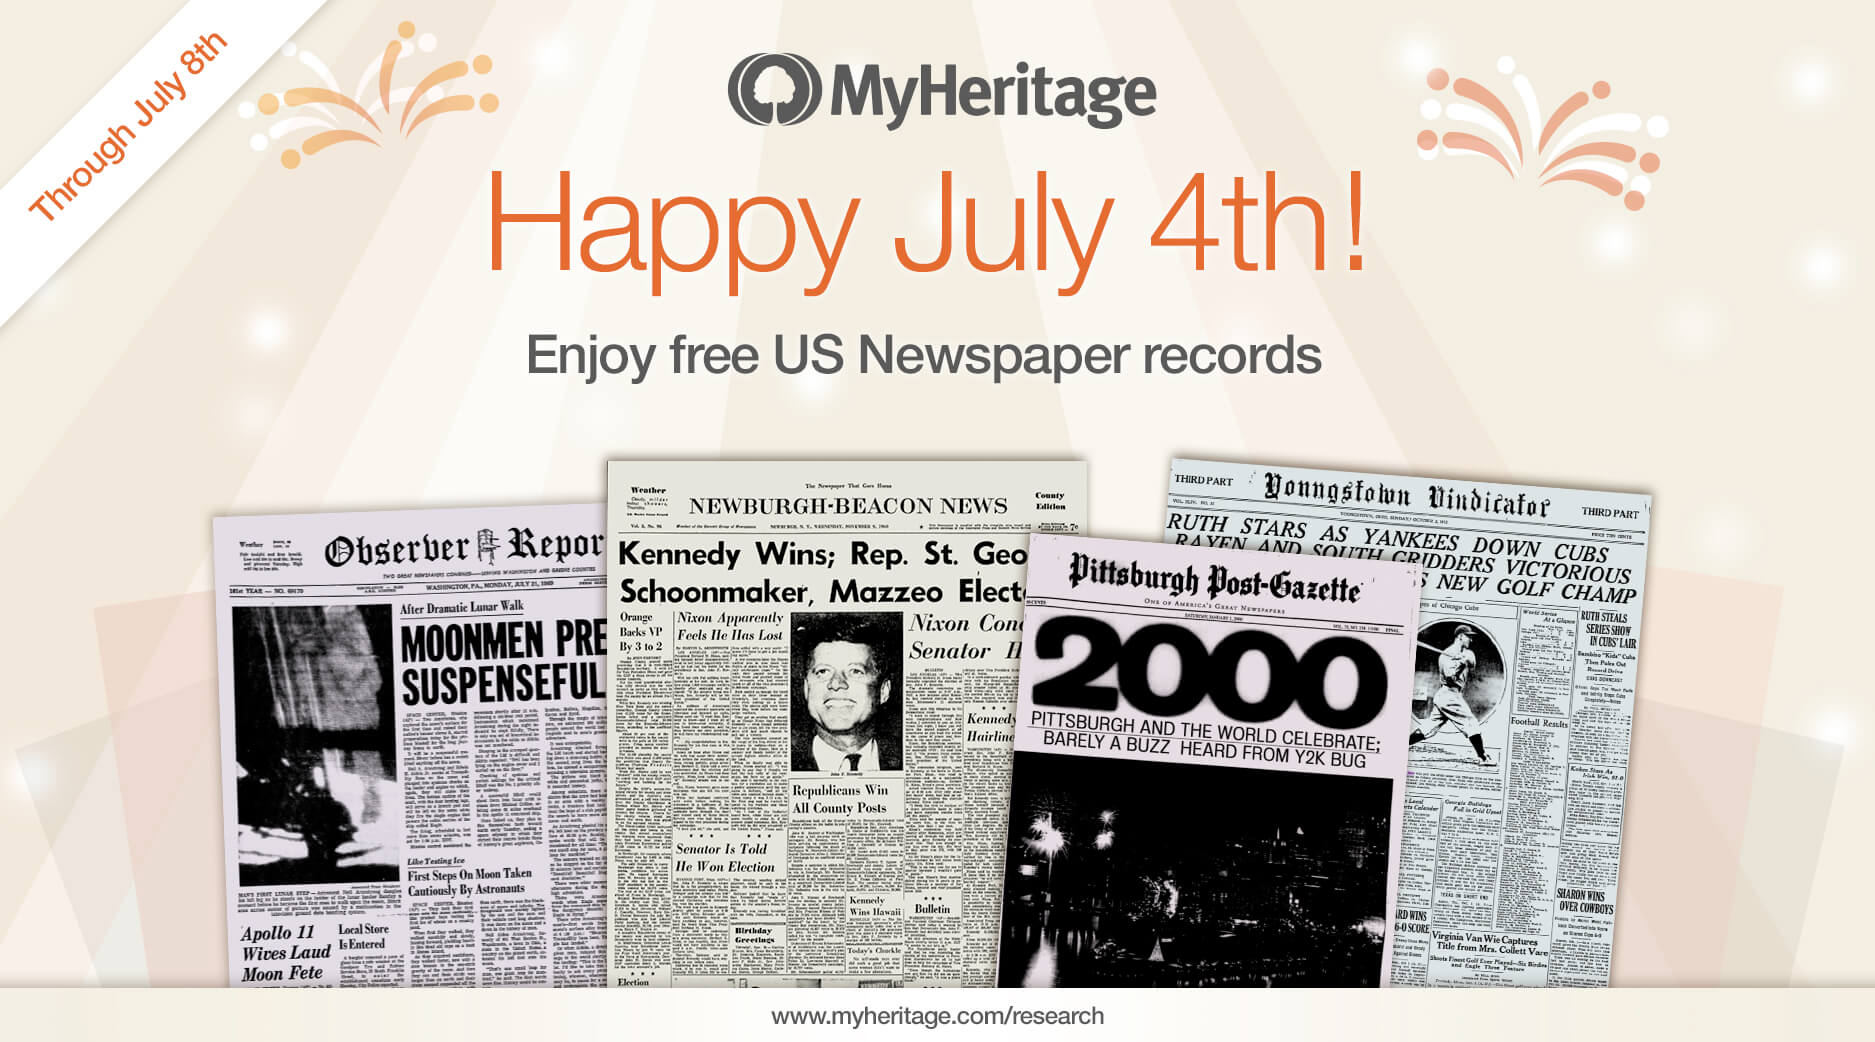 Happy July 4th: Enjoy Free Access to U.S. Newspapers